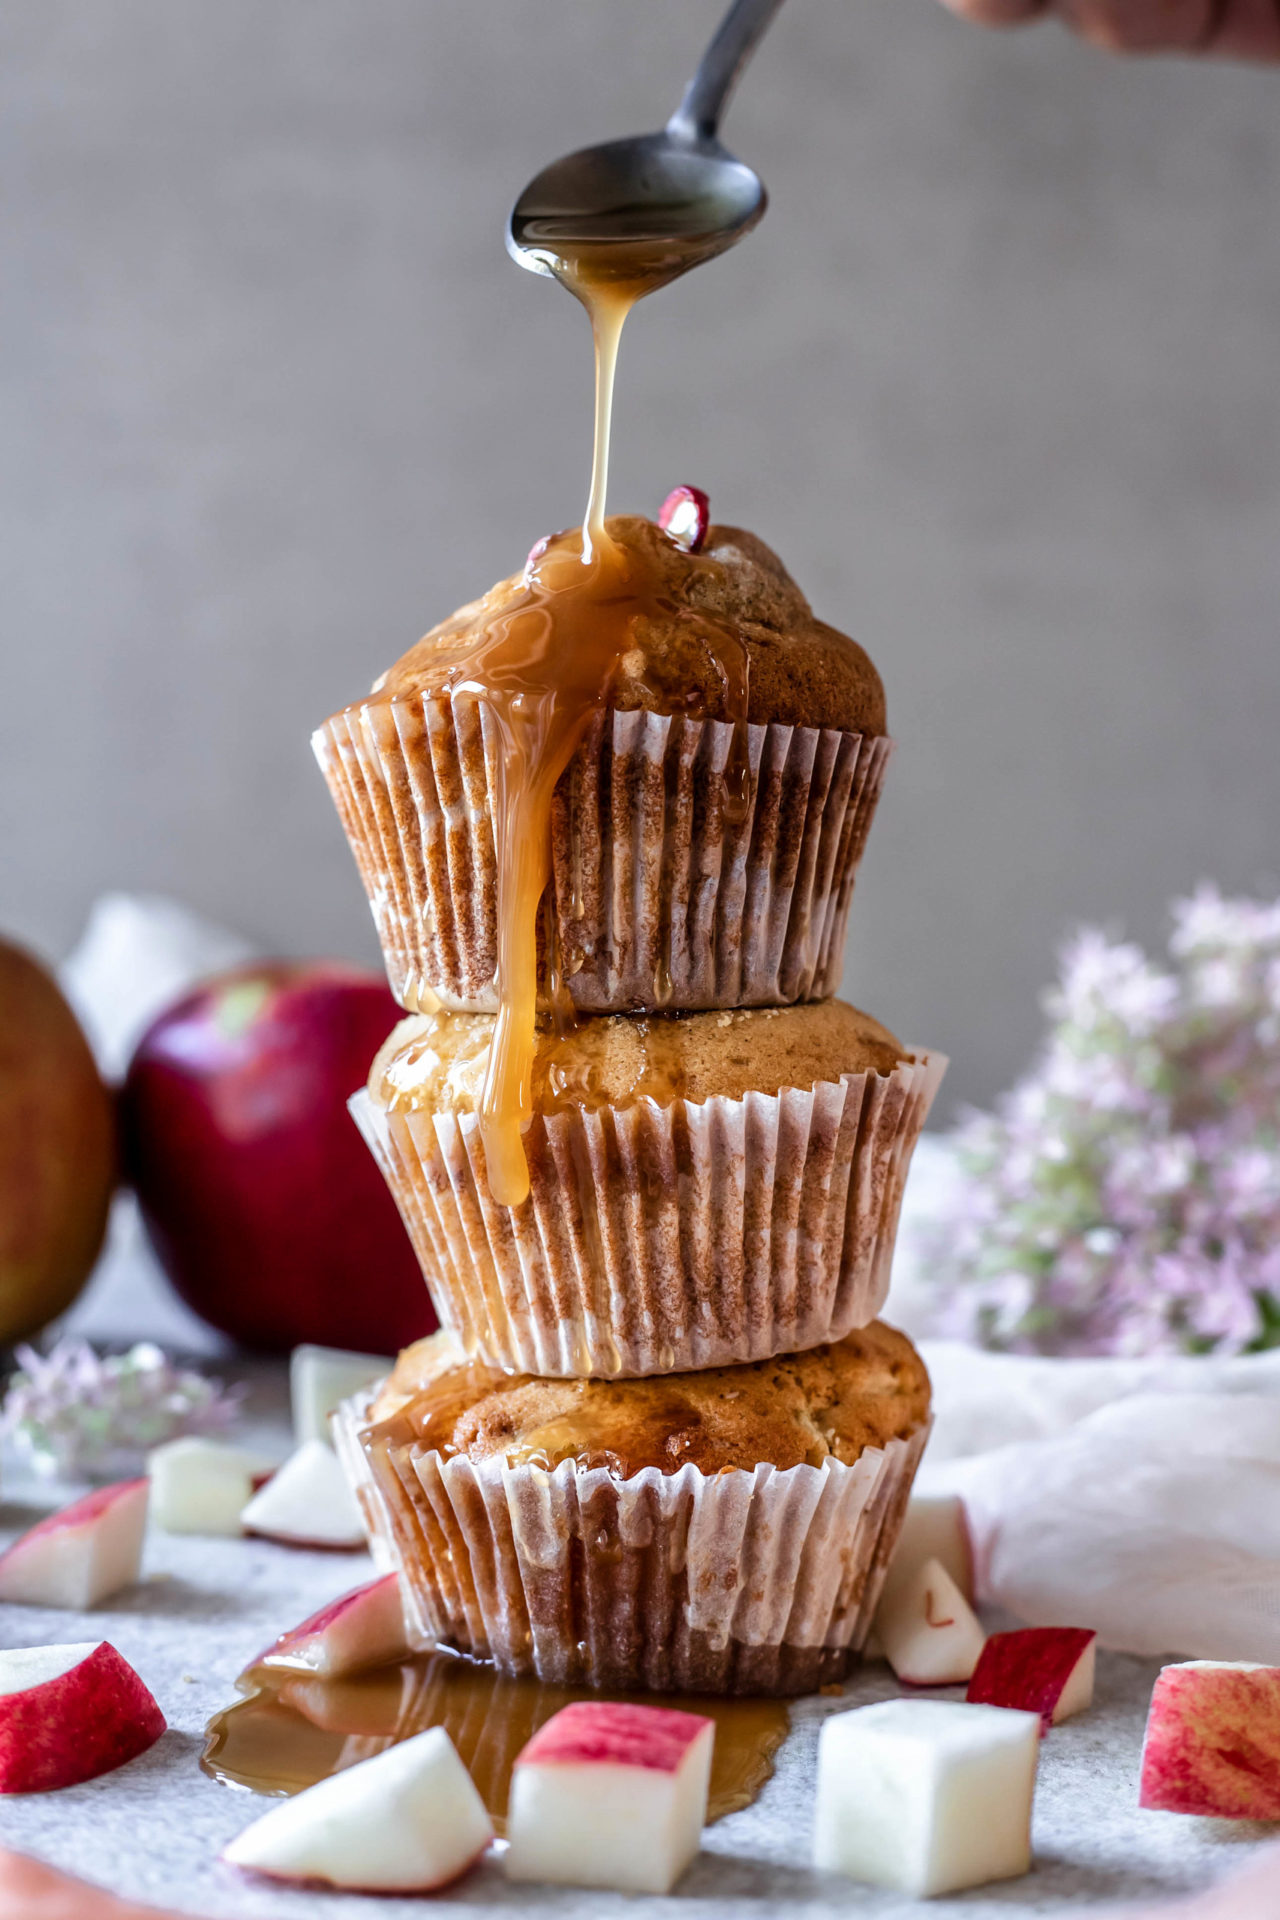 These Gluten-Free Apple Pie Muffins are tender and light, loaded with apple, perfectly sweet, hearty, satisfying and so simple to make!